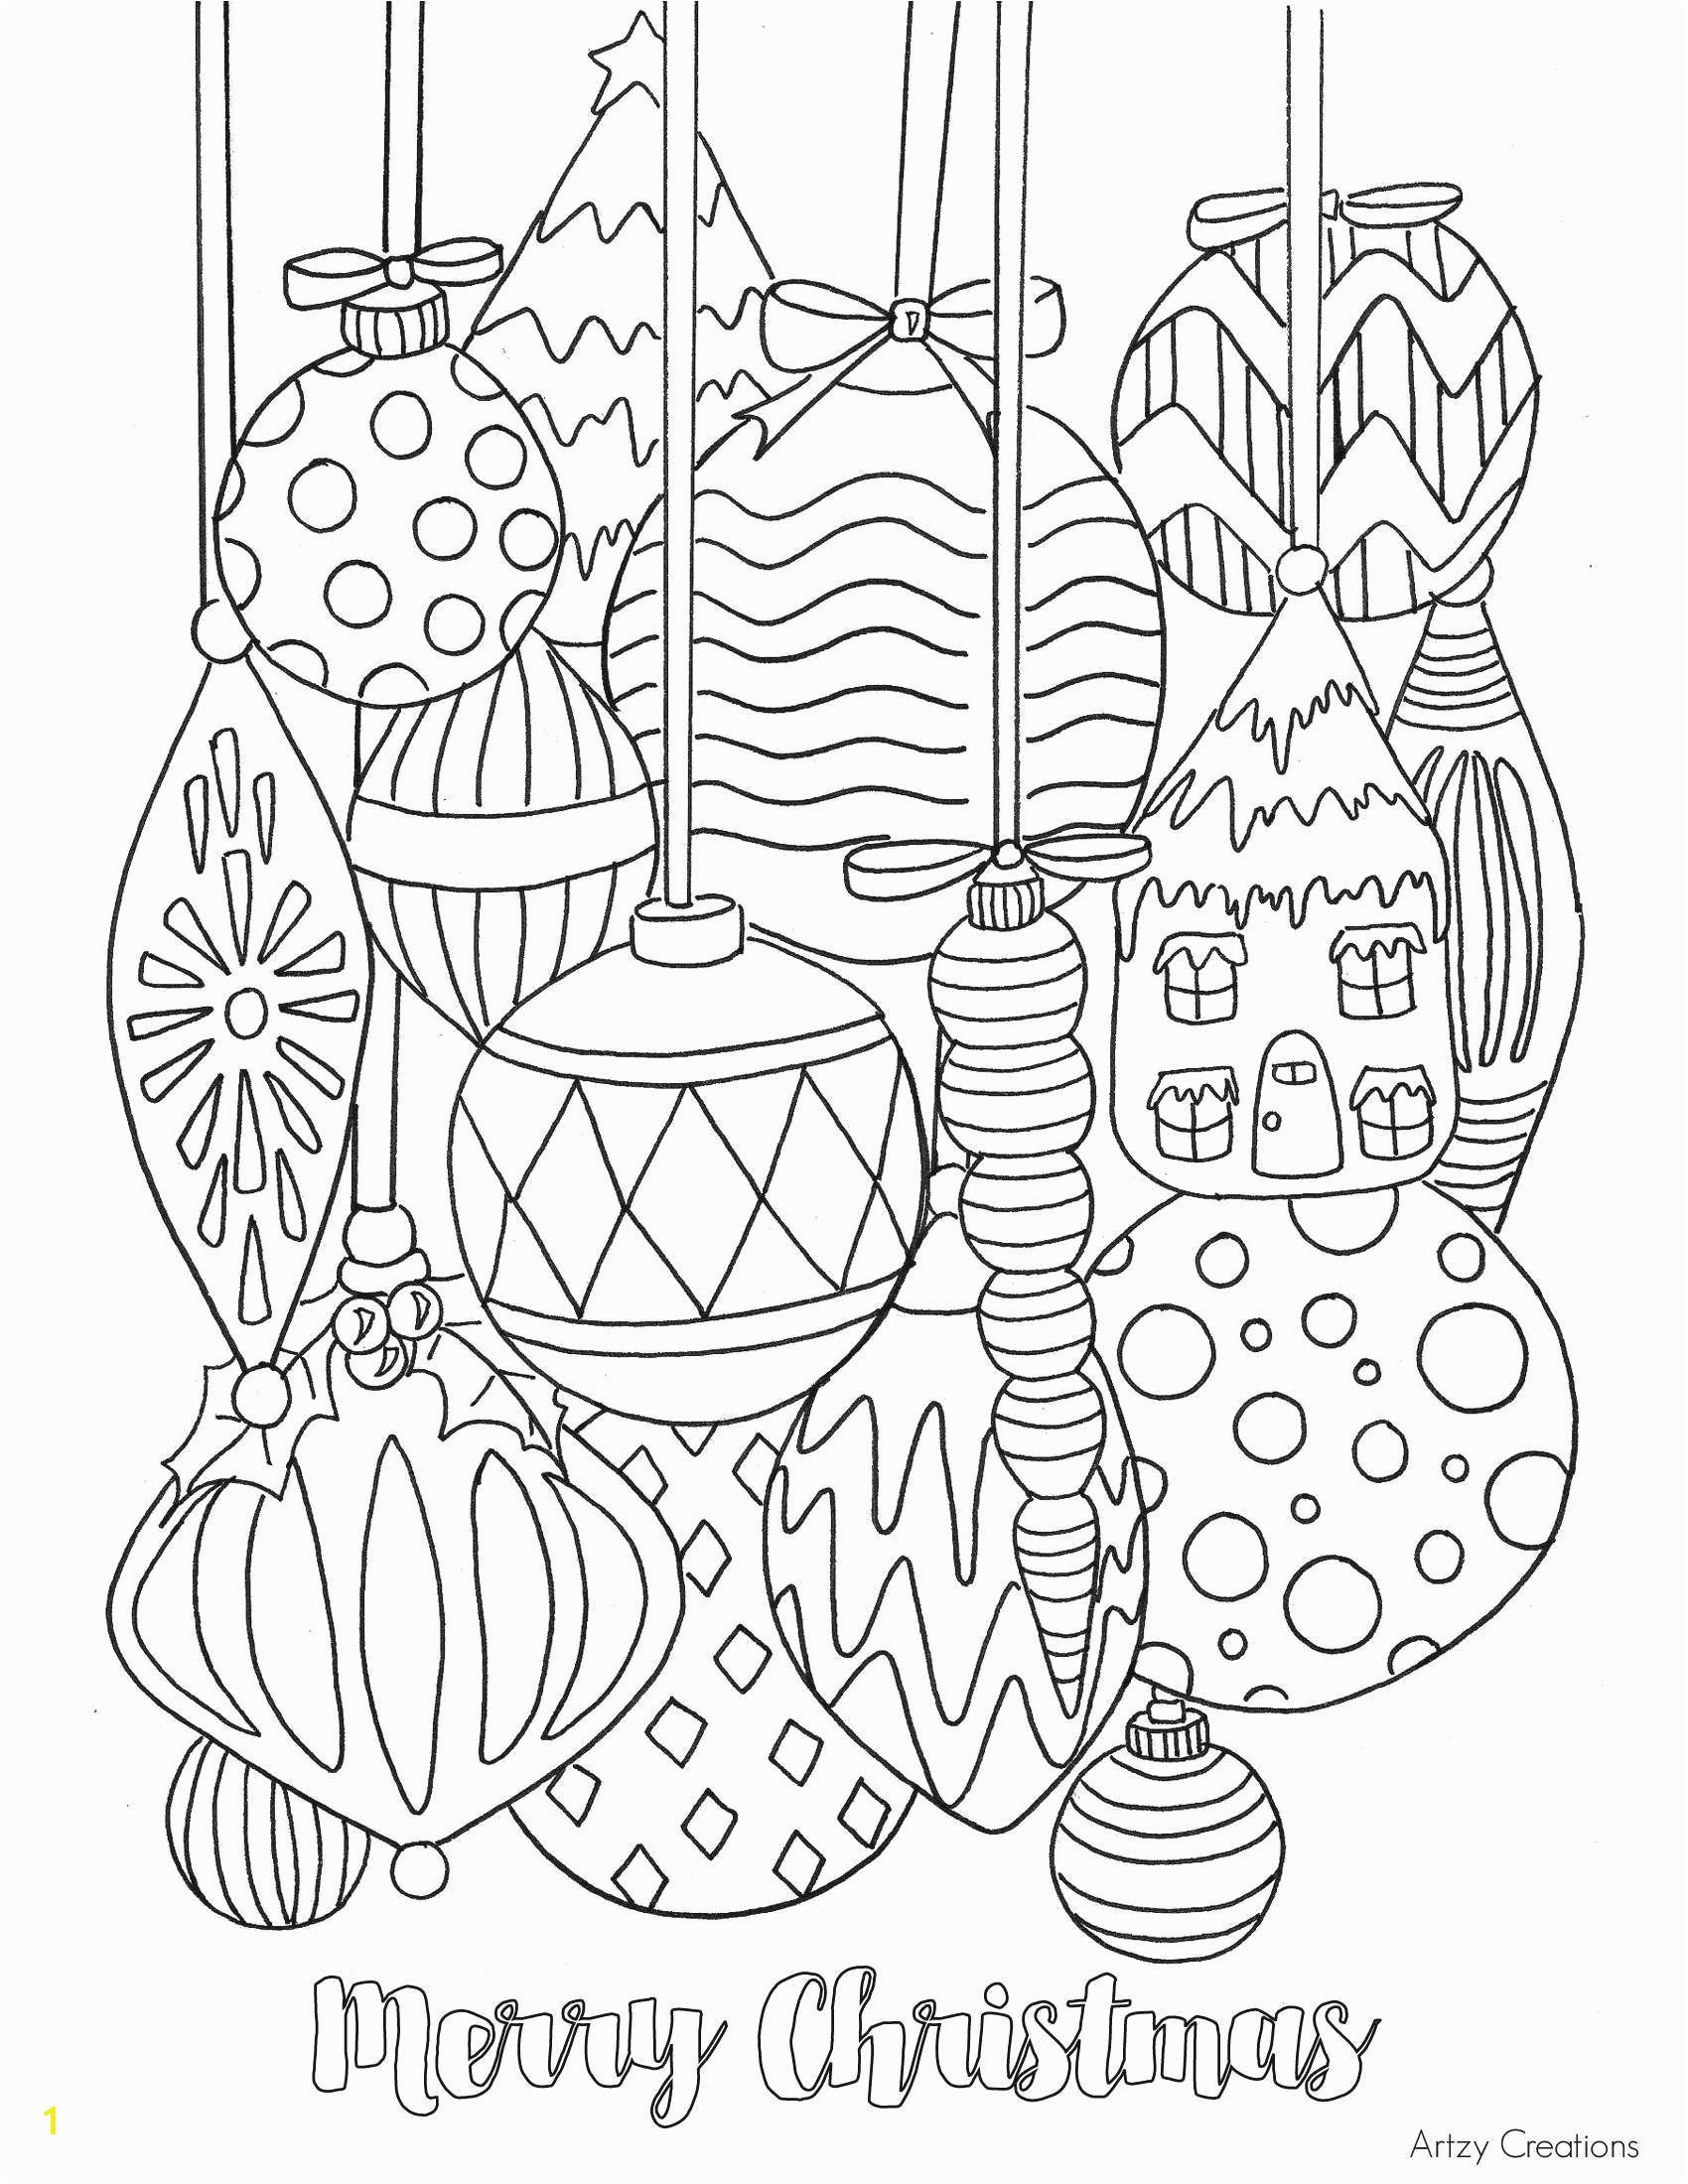 Free Christmas Coloring Pages Unique Cool Coloring Pages Printable New Printable Cds 0d Coloring Pages New